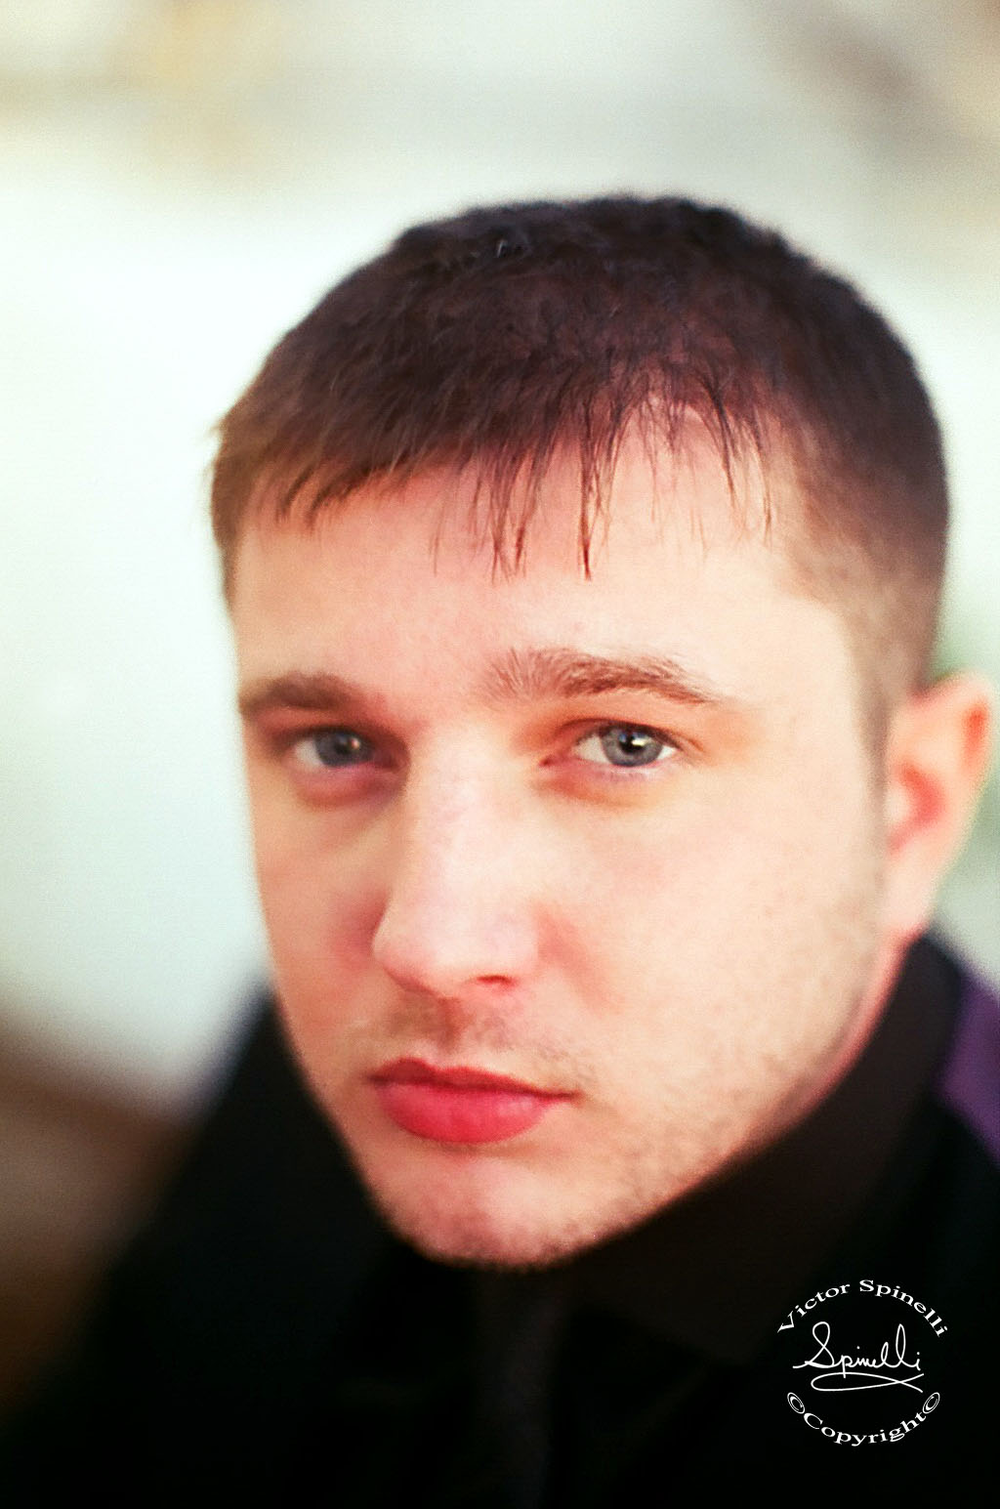 Intimate portrait that I took of British musician Plan B,  (Benjamin Paul Ballance-Drew) before he performed at Ibiza Rocks in 2011. ©Victor Spinelli Archive.